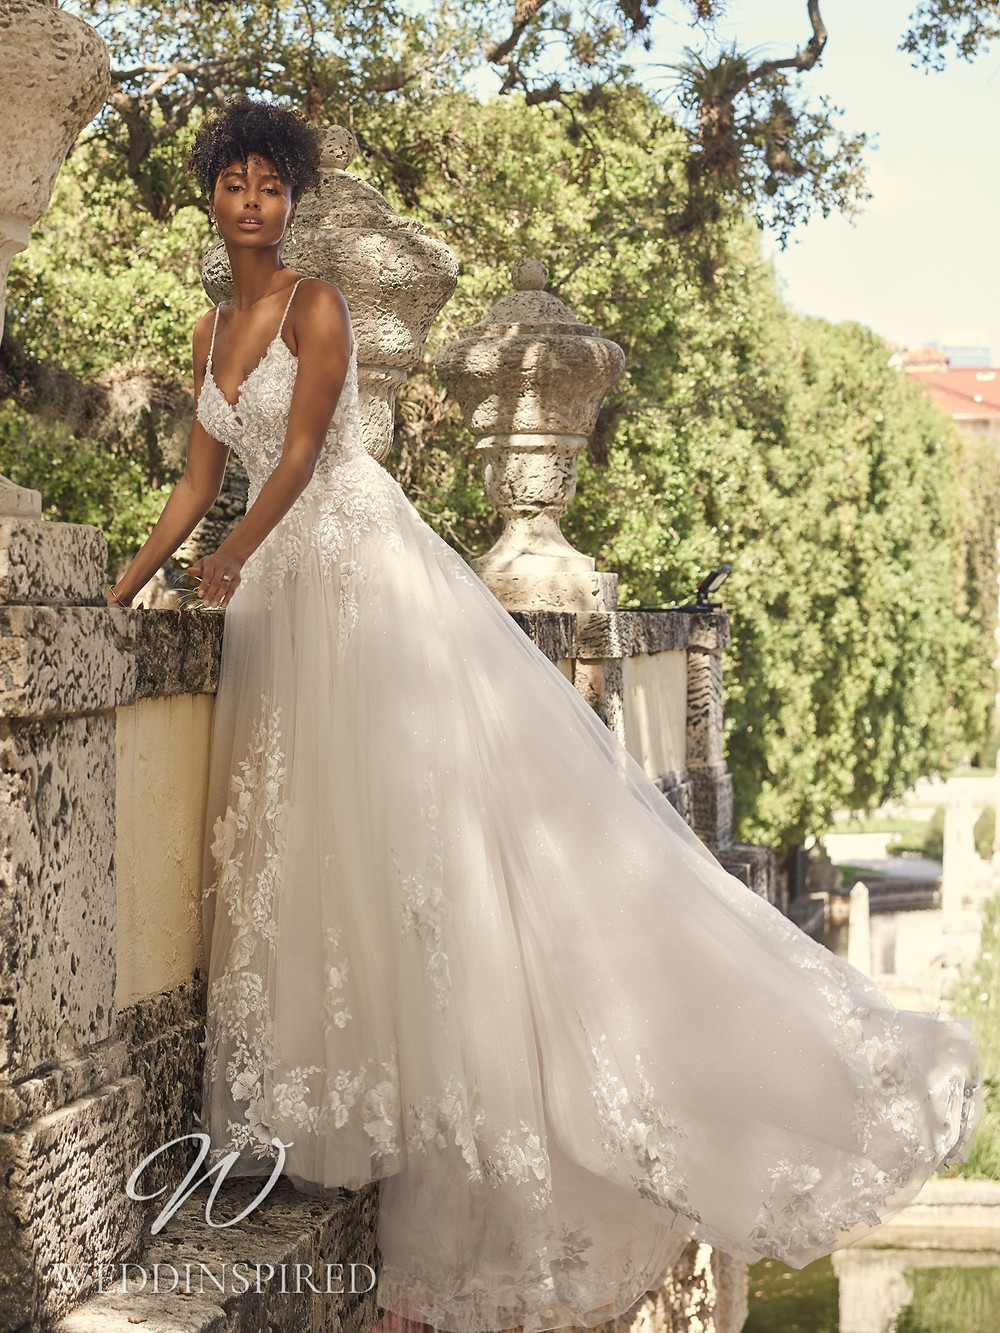 A Maggie Sottero 2021 lace and tulle A-line wedding dress